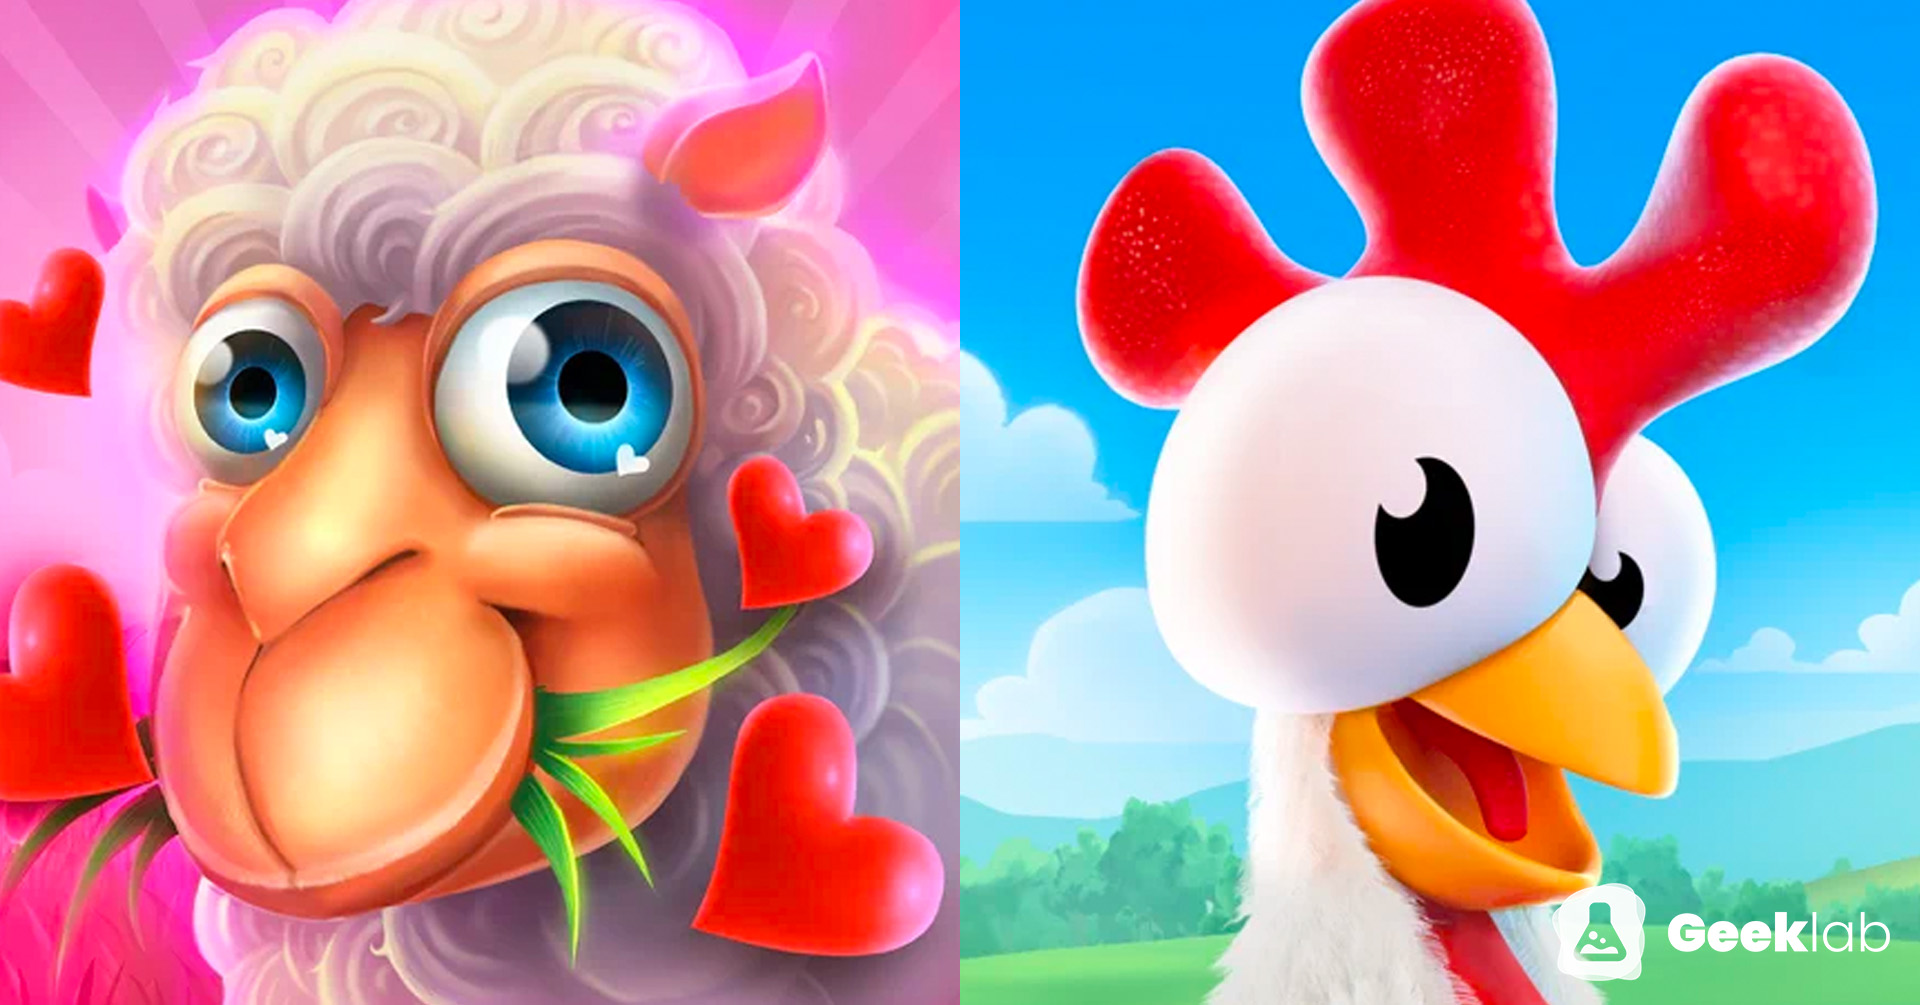 Identical copy cat games: Example of Let's Farm and Hay Day